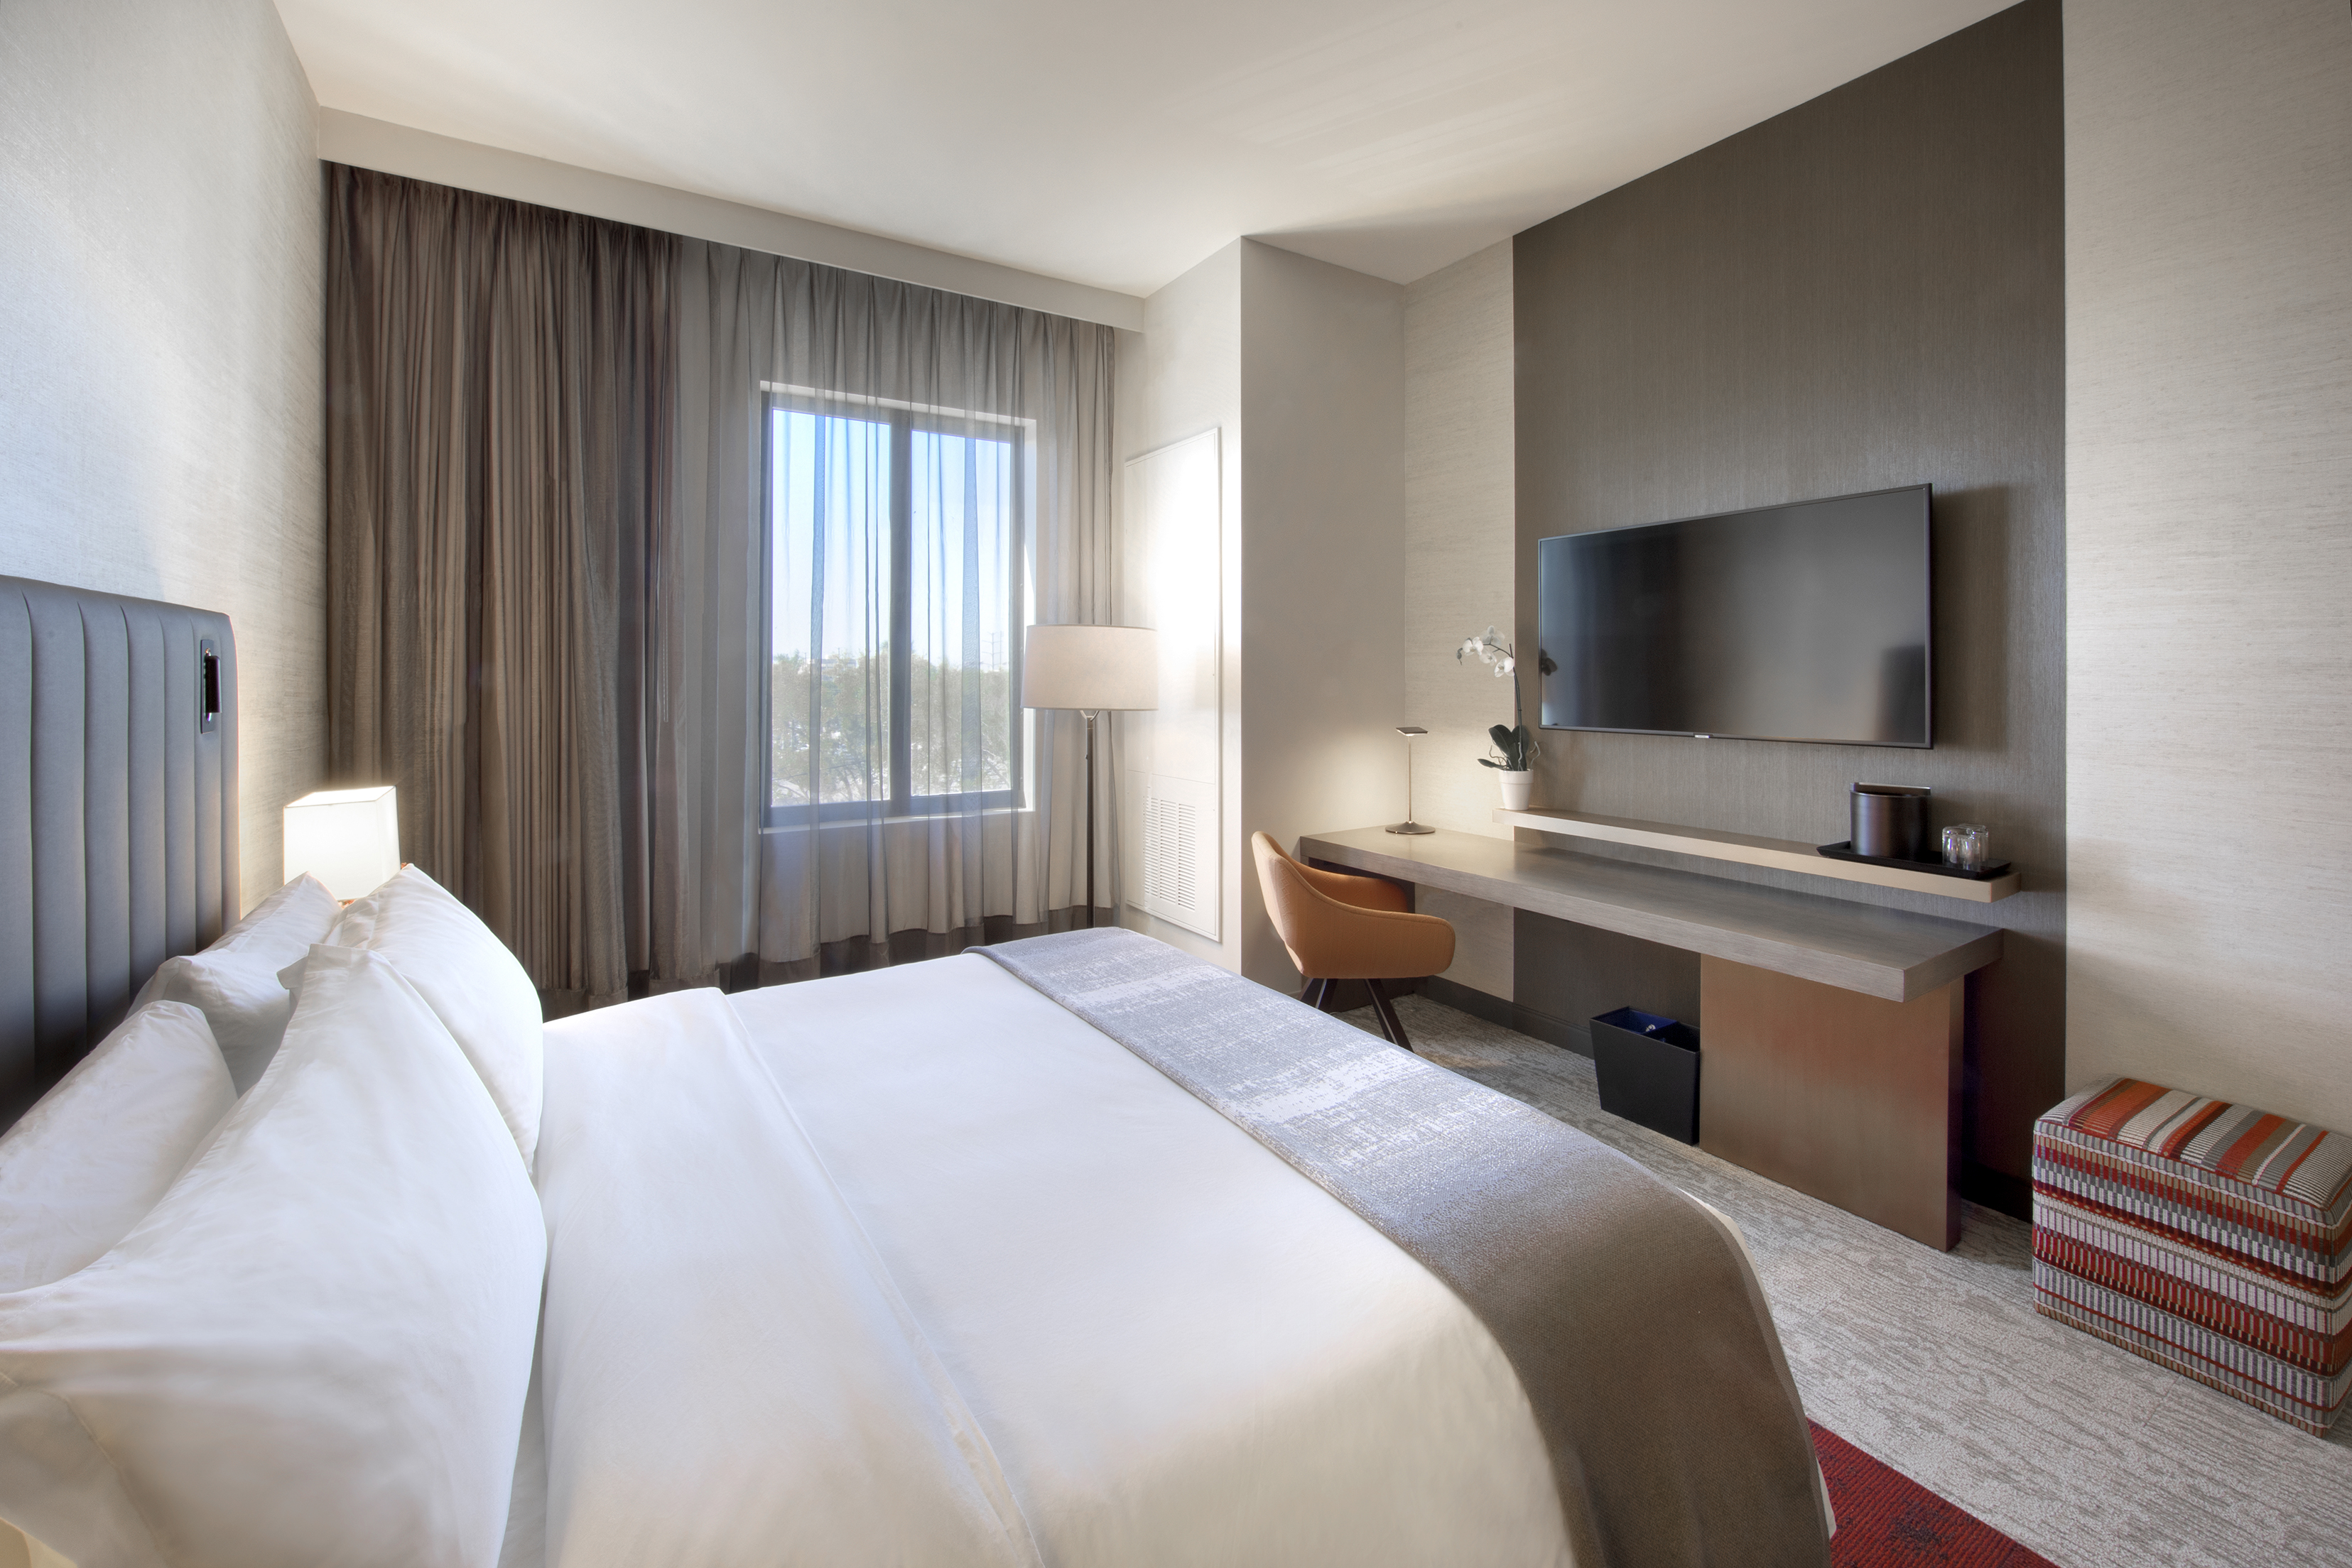 https://www.hotelsbyday.com/_data/default-hotel_image/4/23658/king-guest-room.jpg